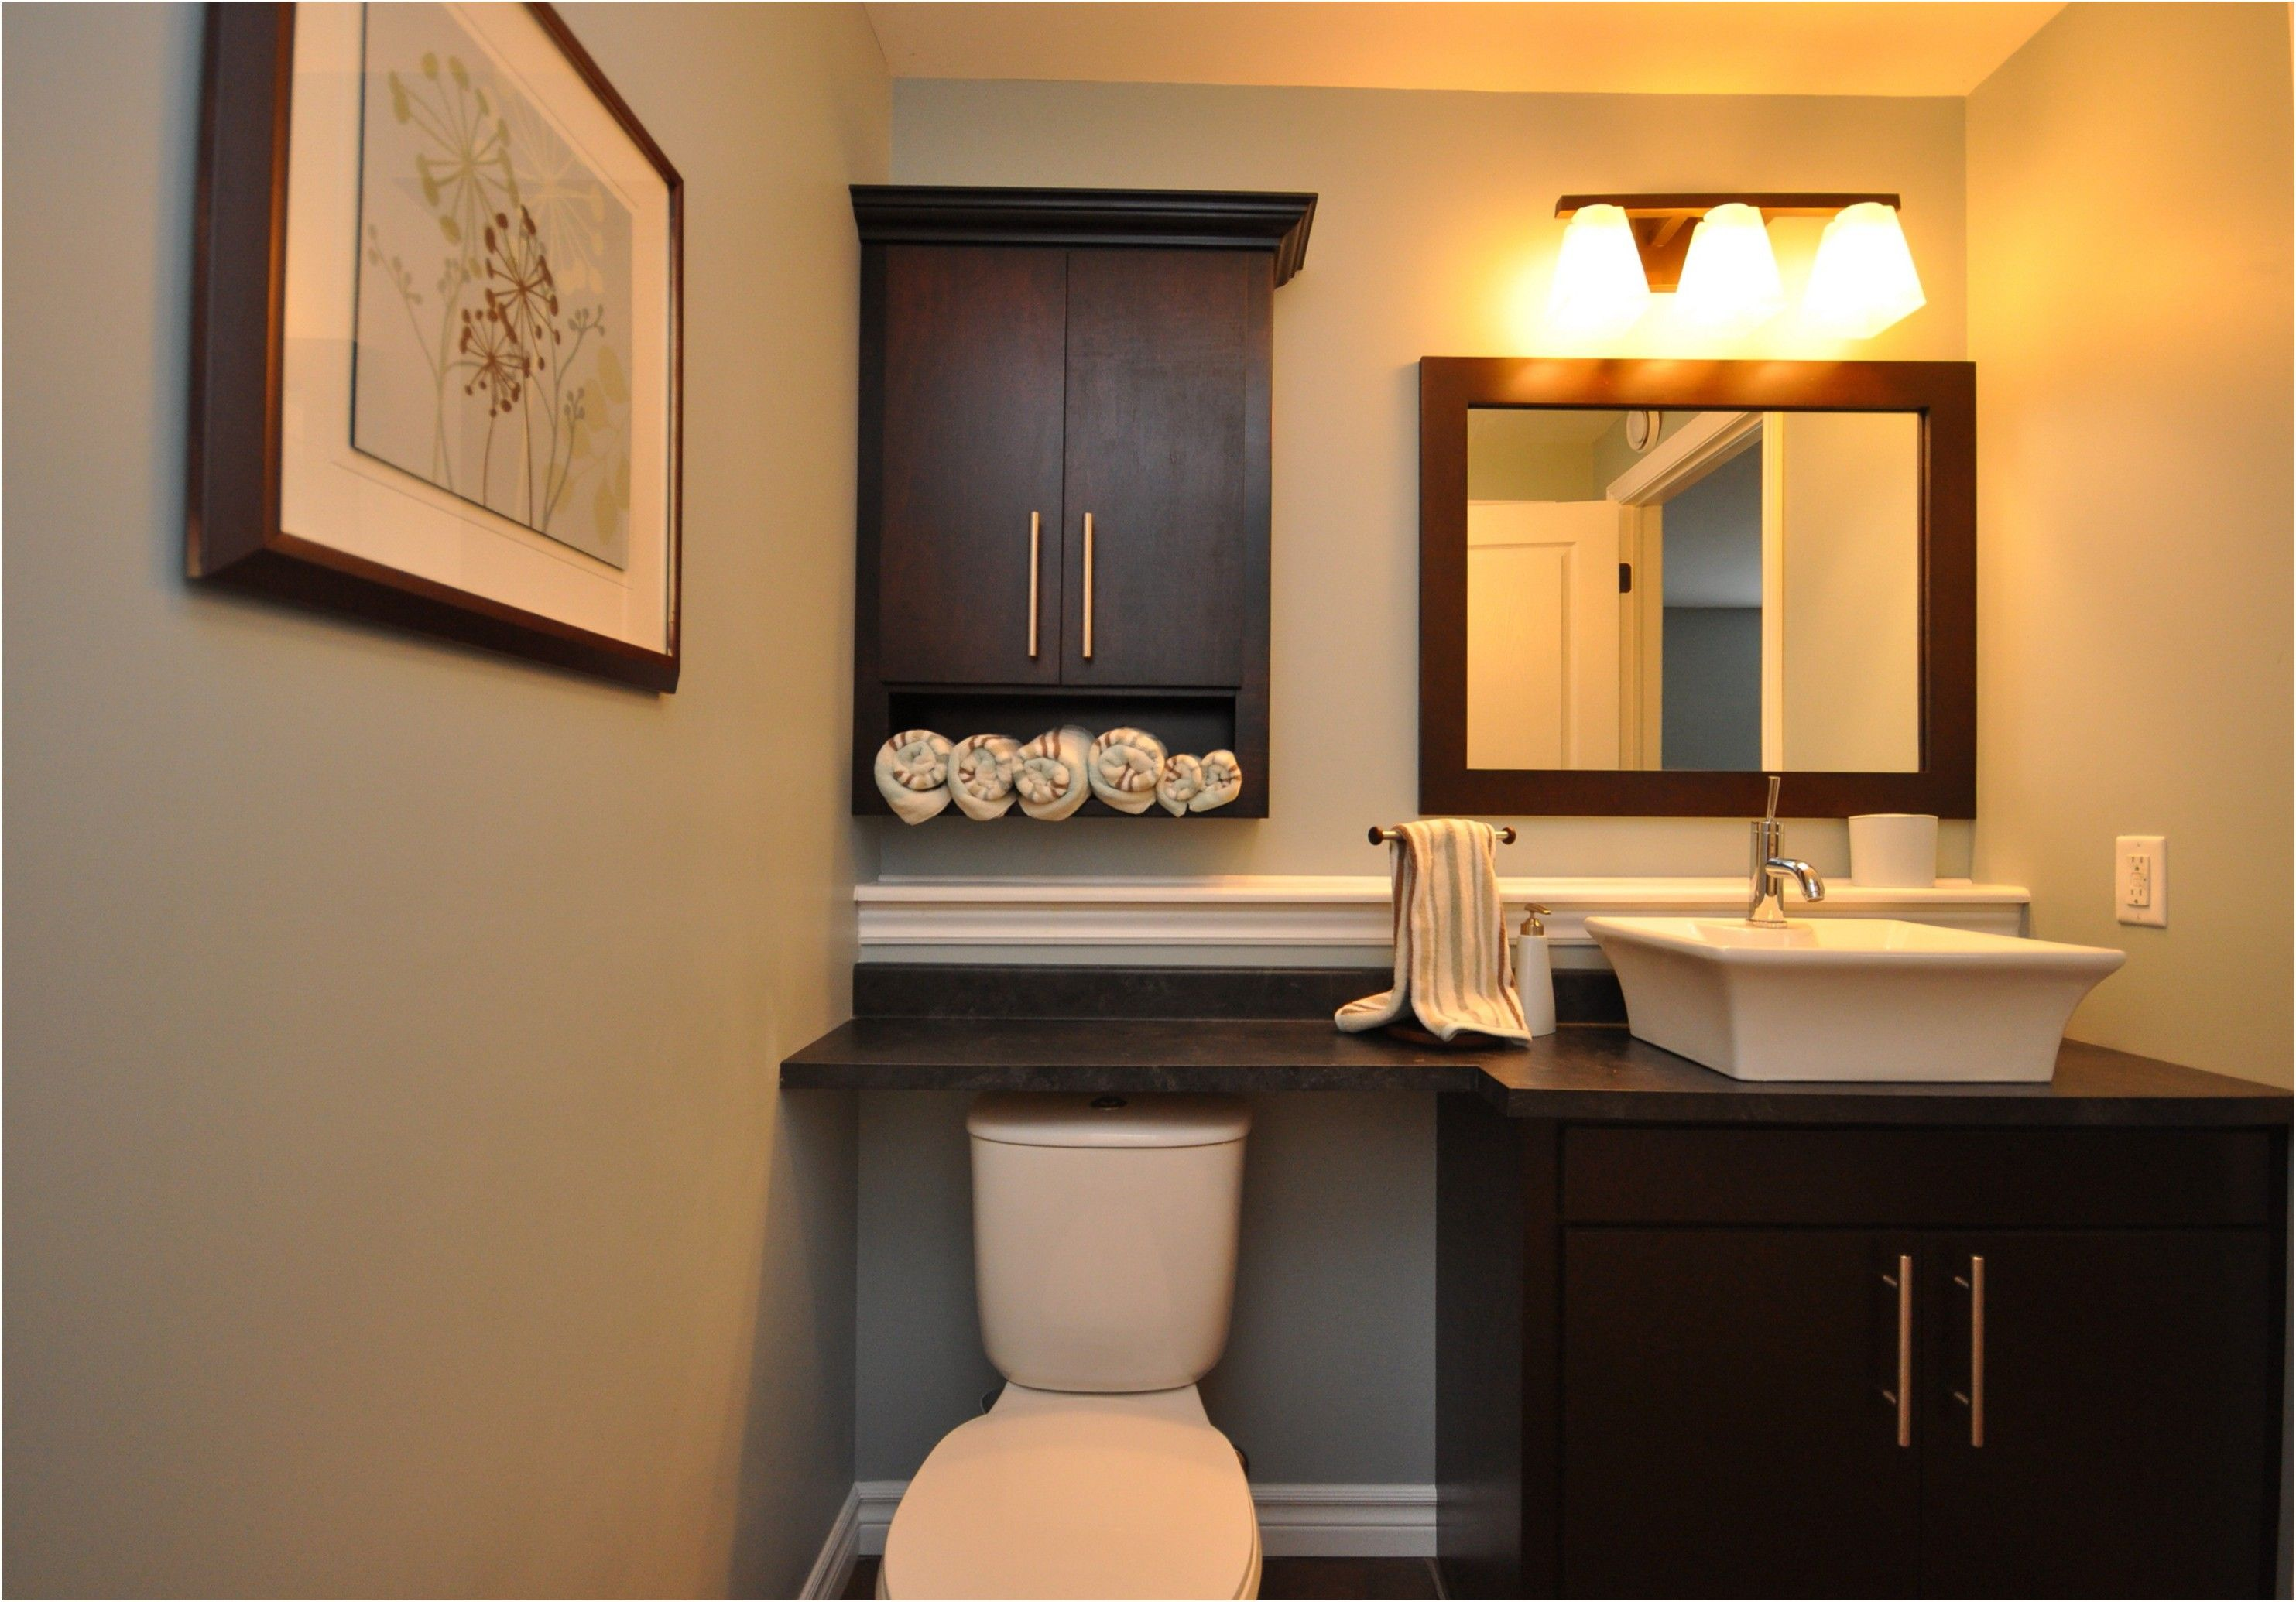 Refacing Bathroom Cabinets Yourself New Ideas From Banjo Countertops